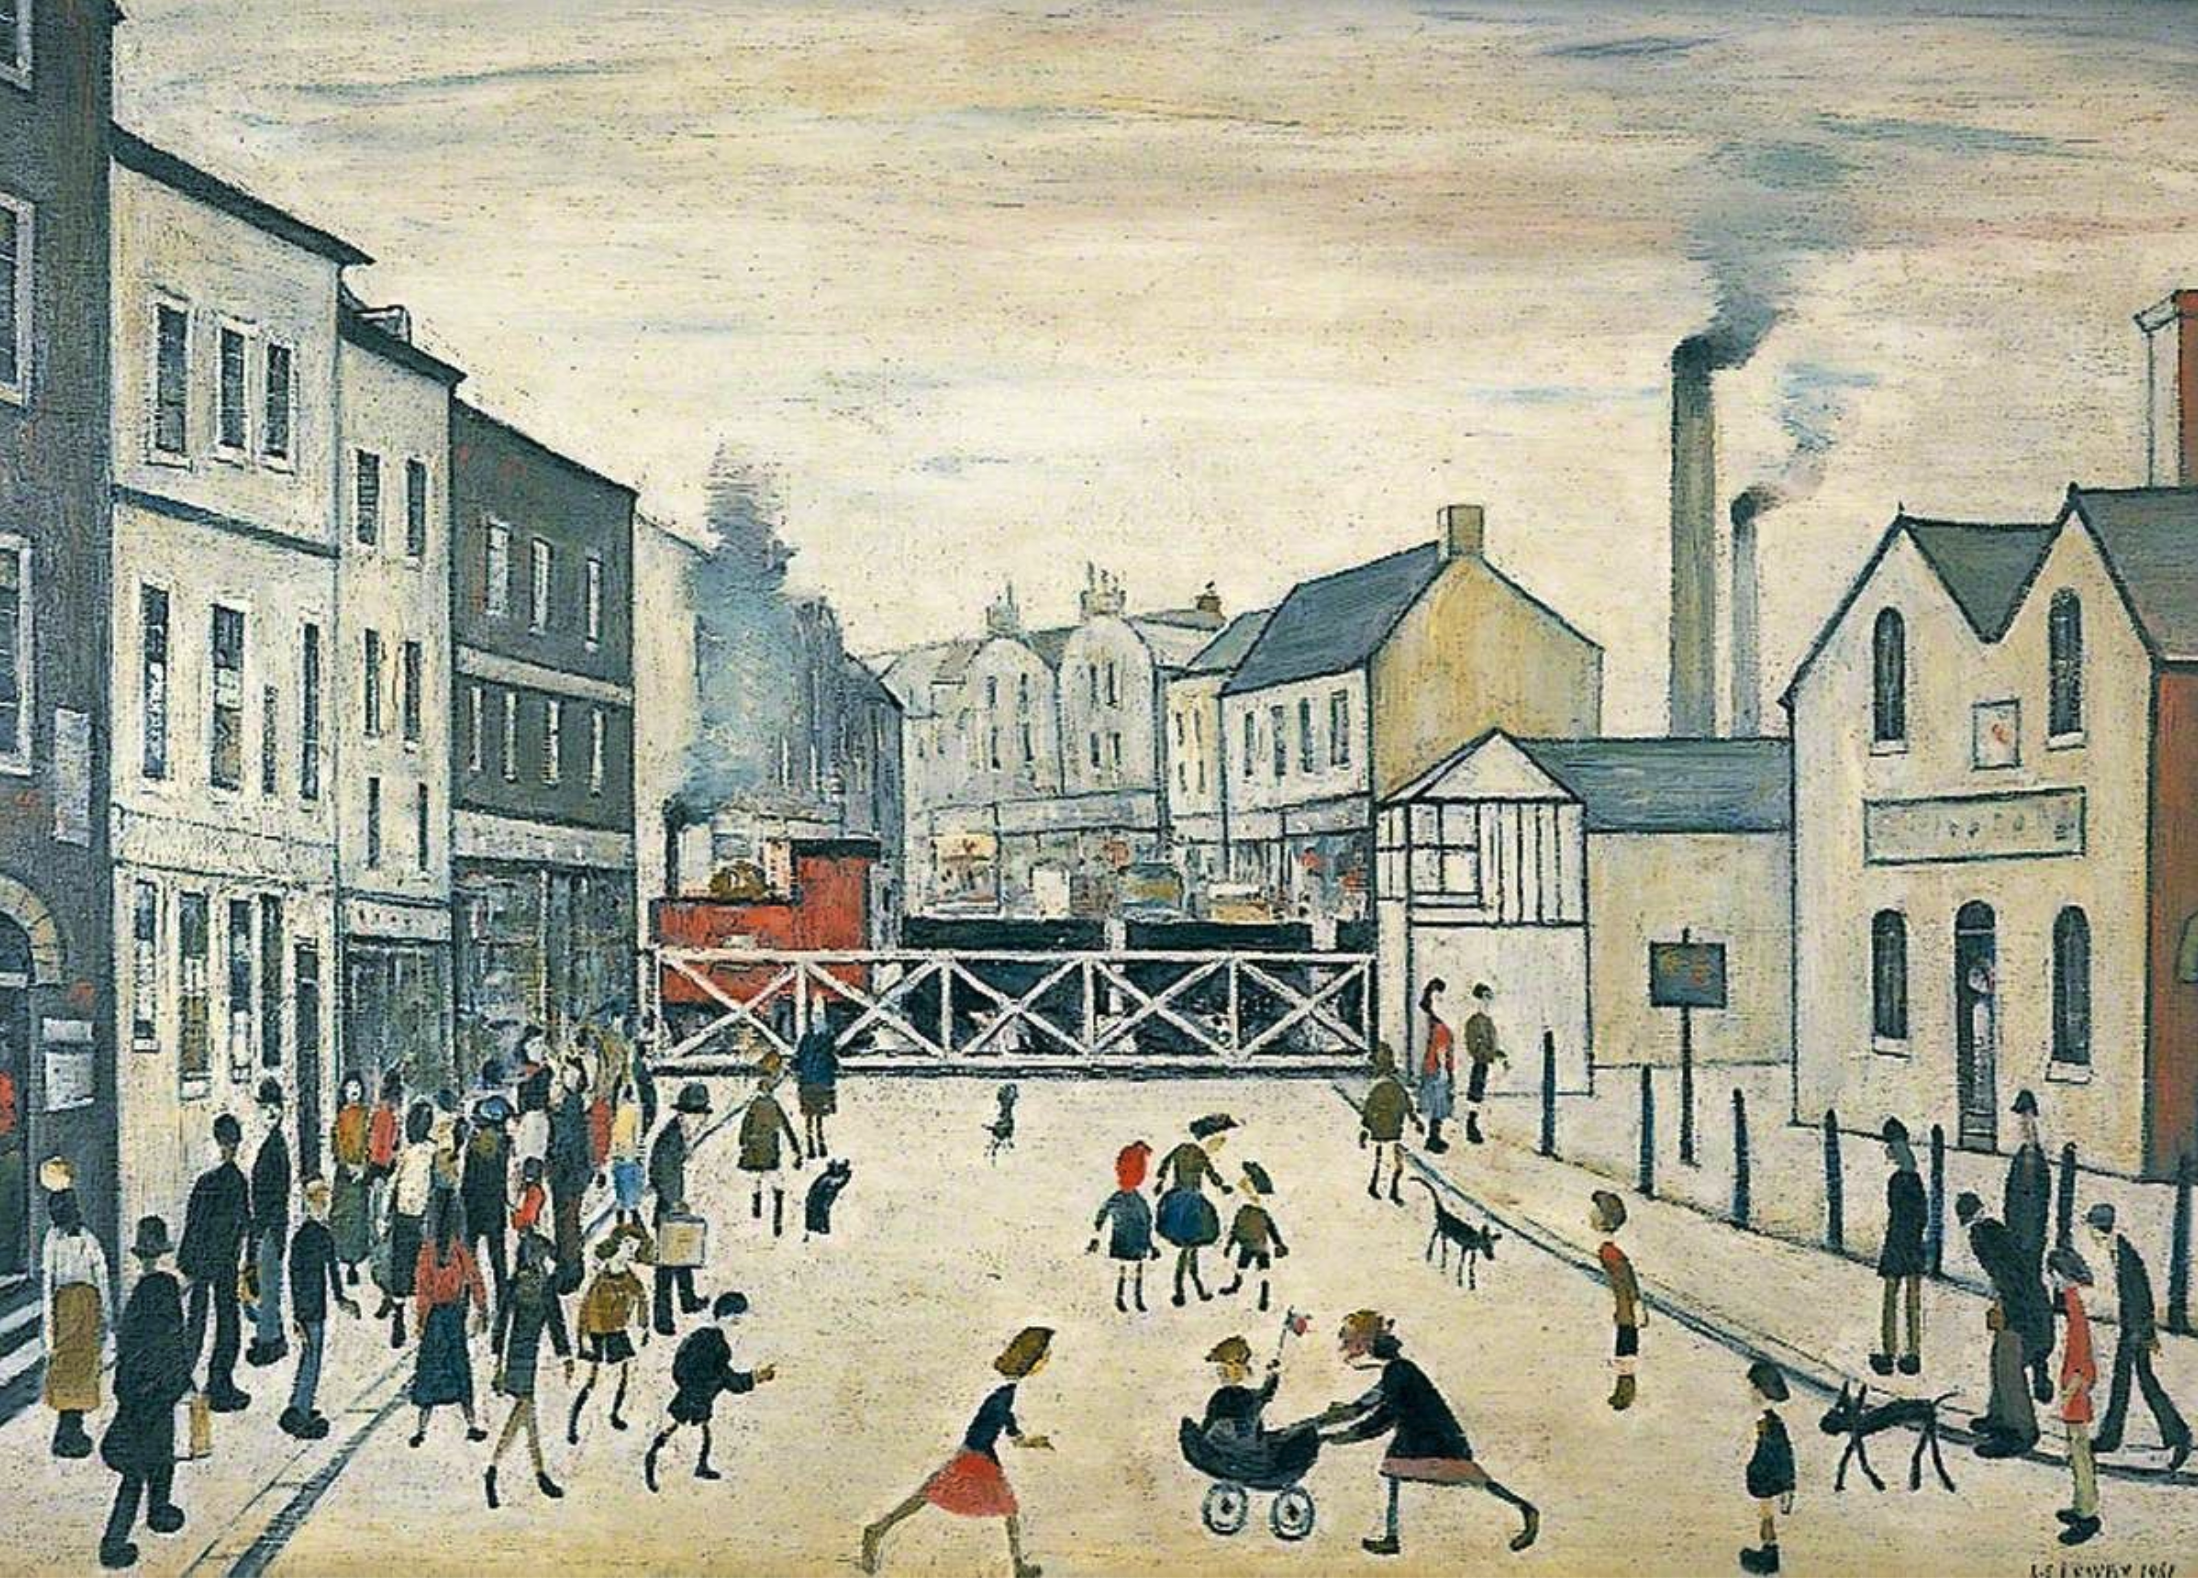 Level Crossing, Burton-upon-Trent (1961) by Laurence Stephen Lowry (1887 - 1976), English artist.